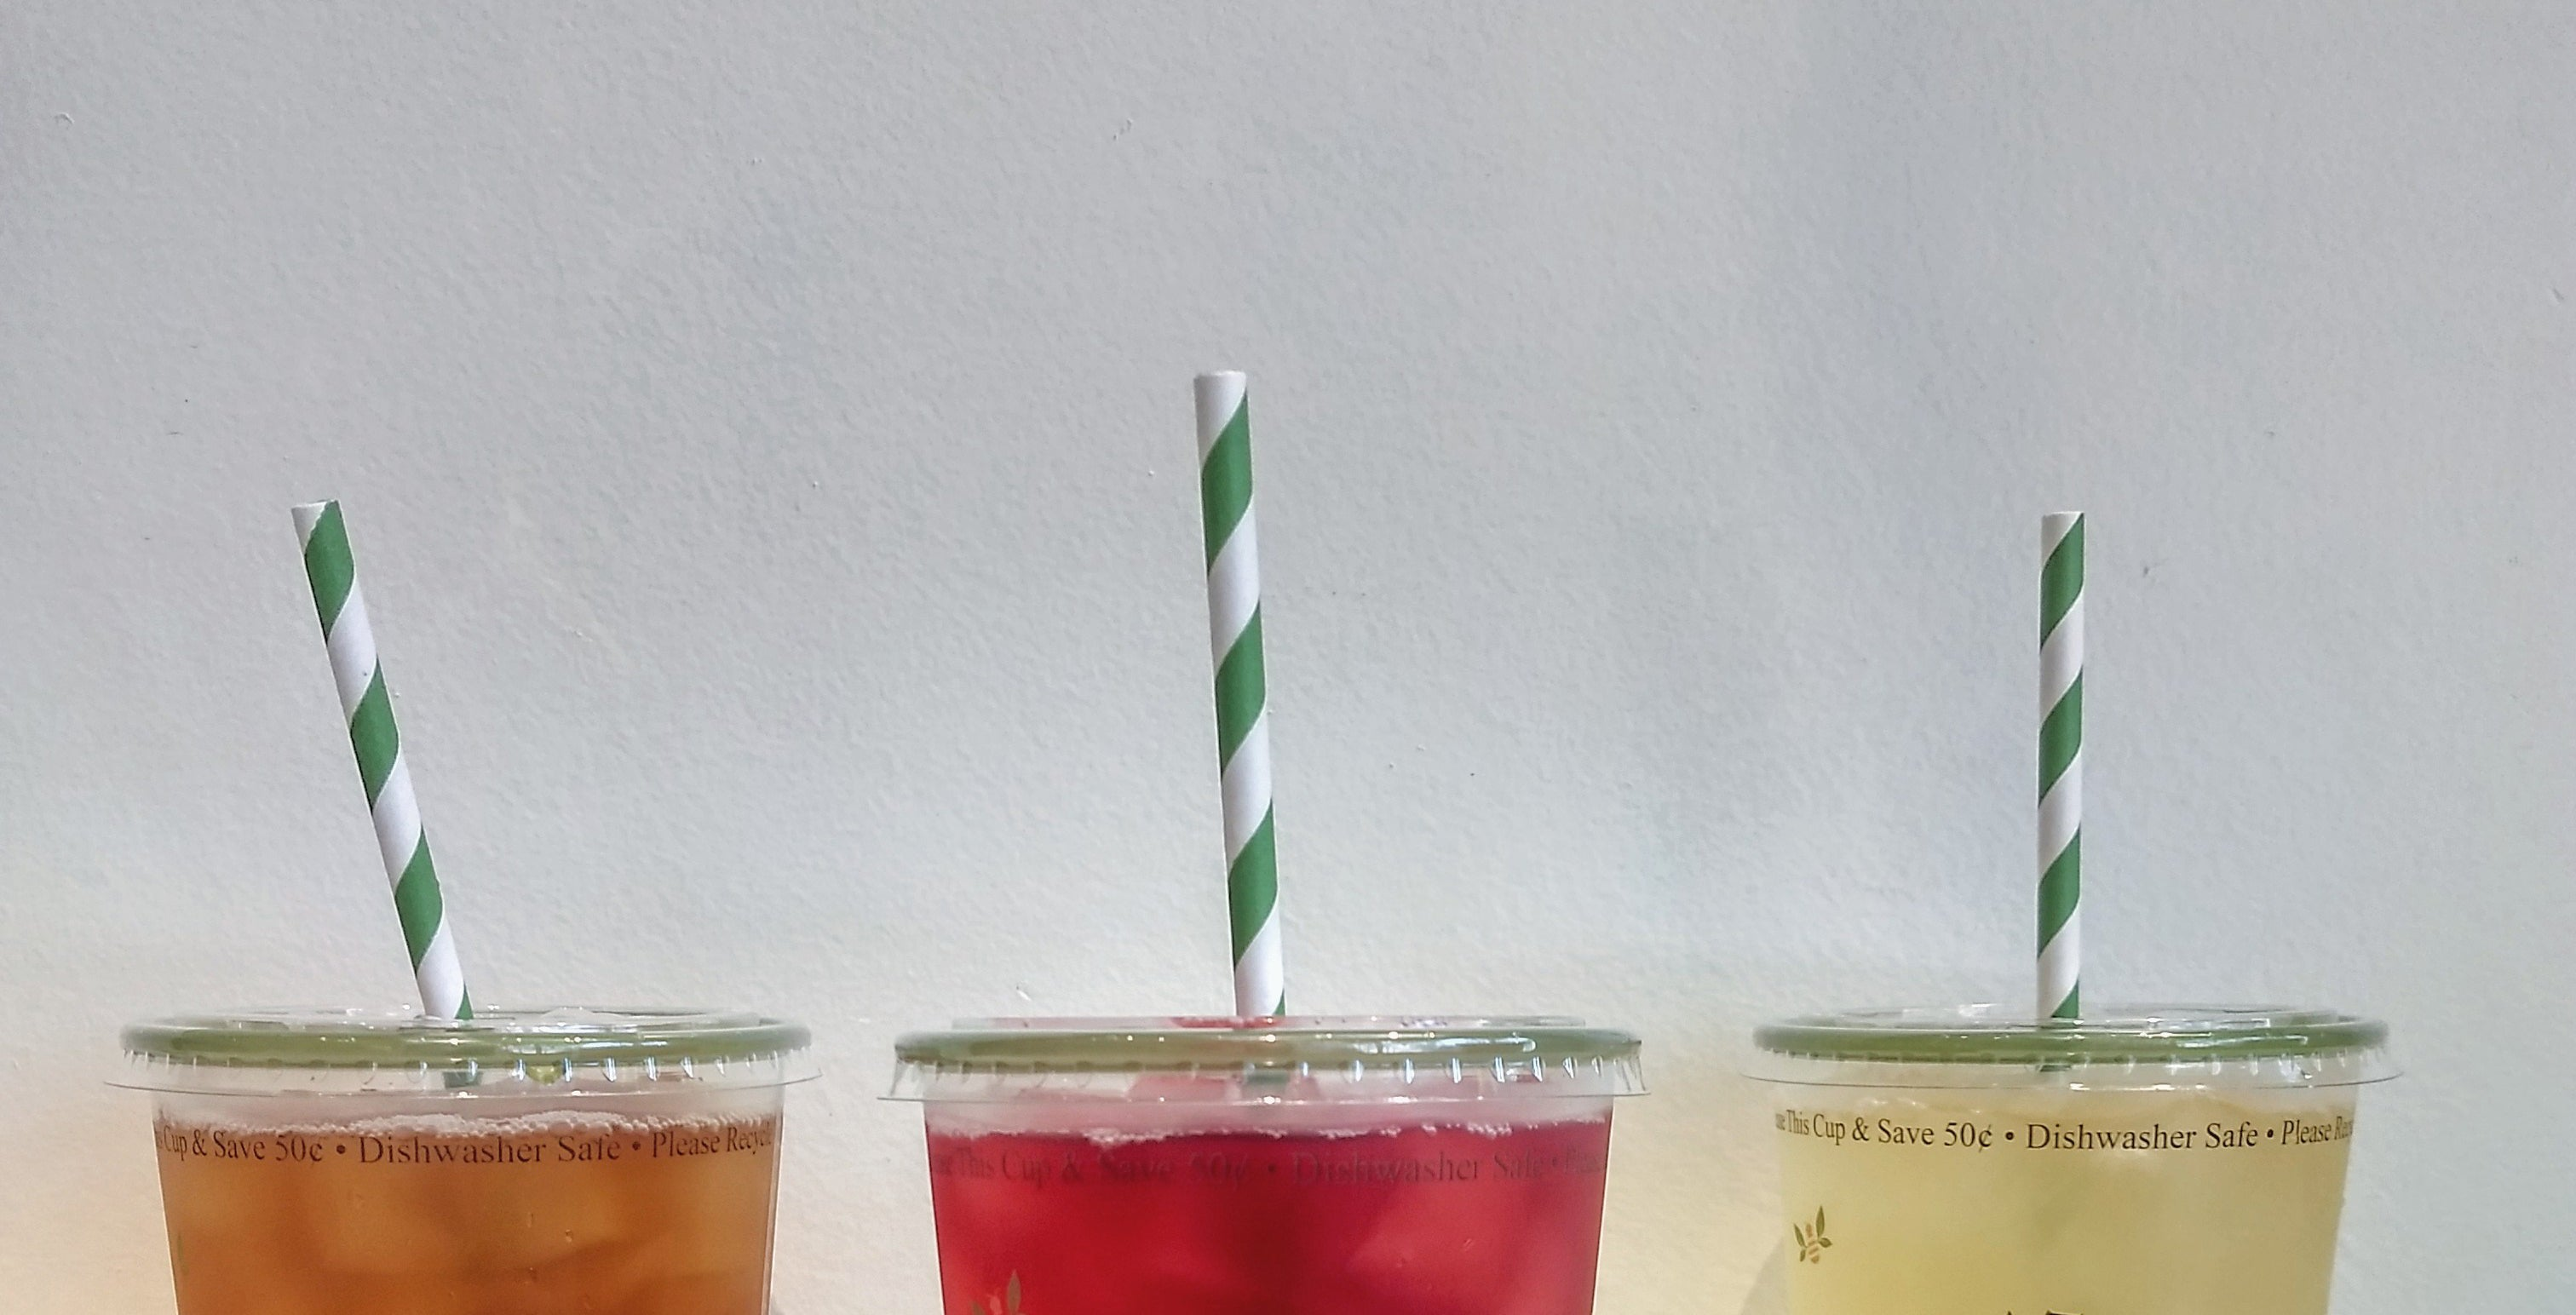 three cups of iced tea with green and white striped straws